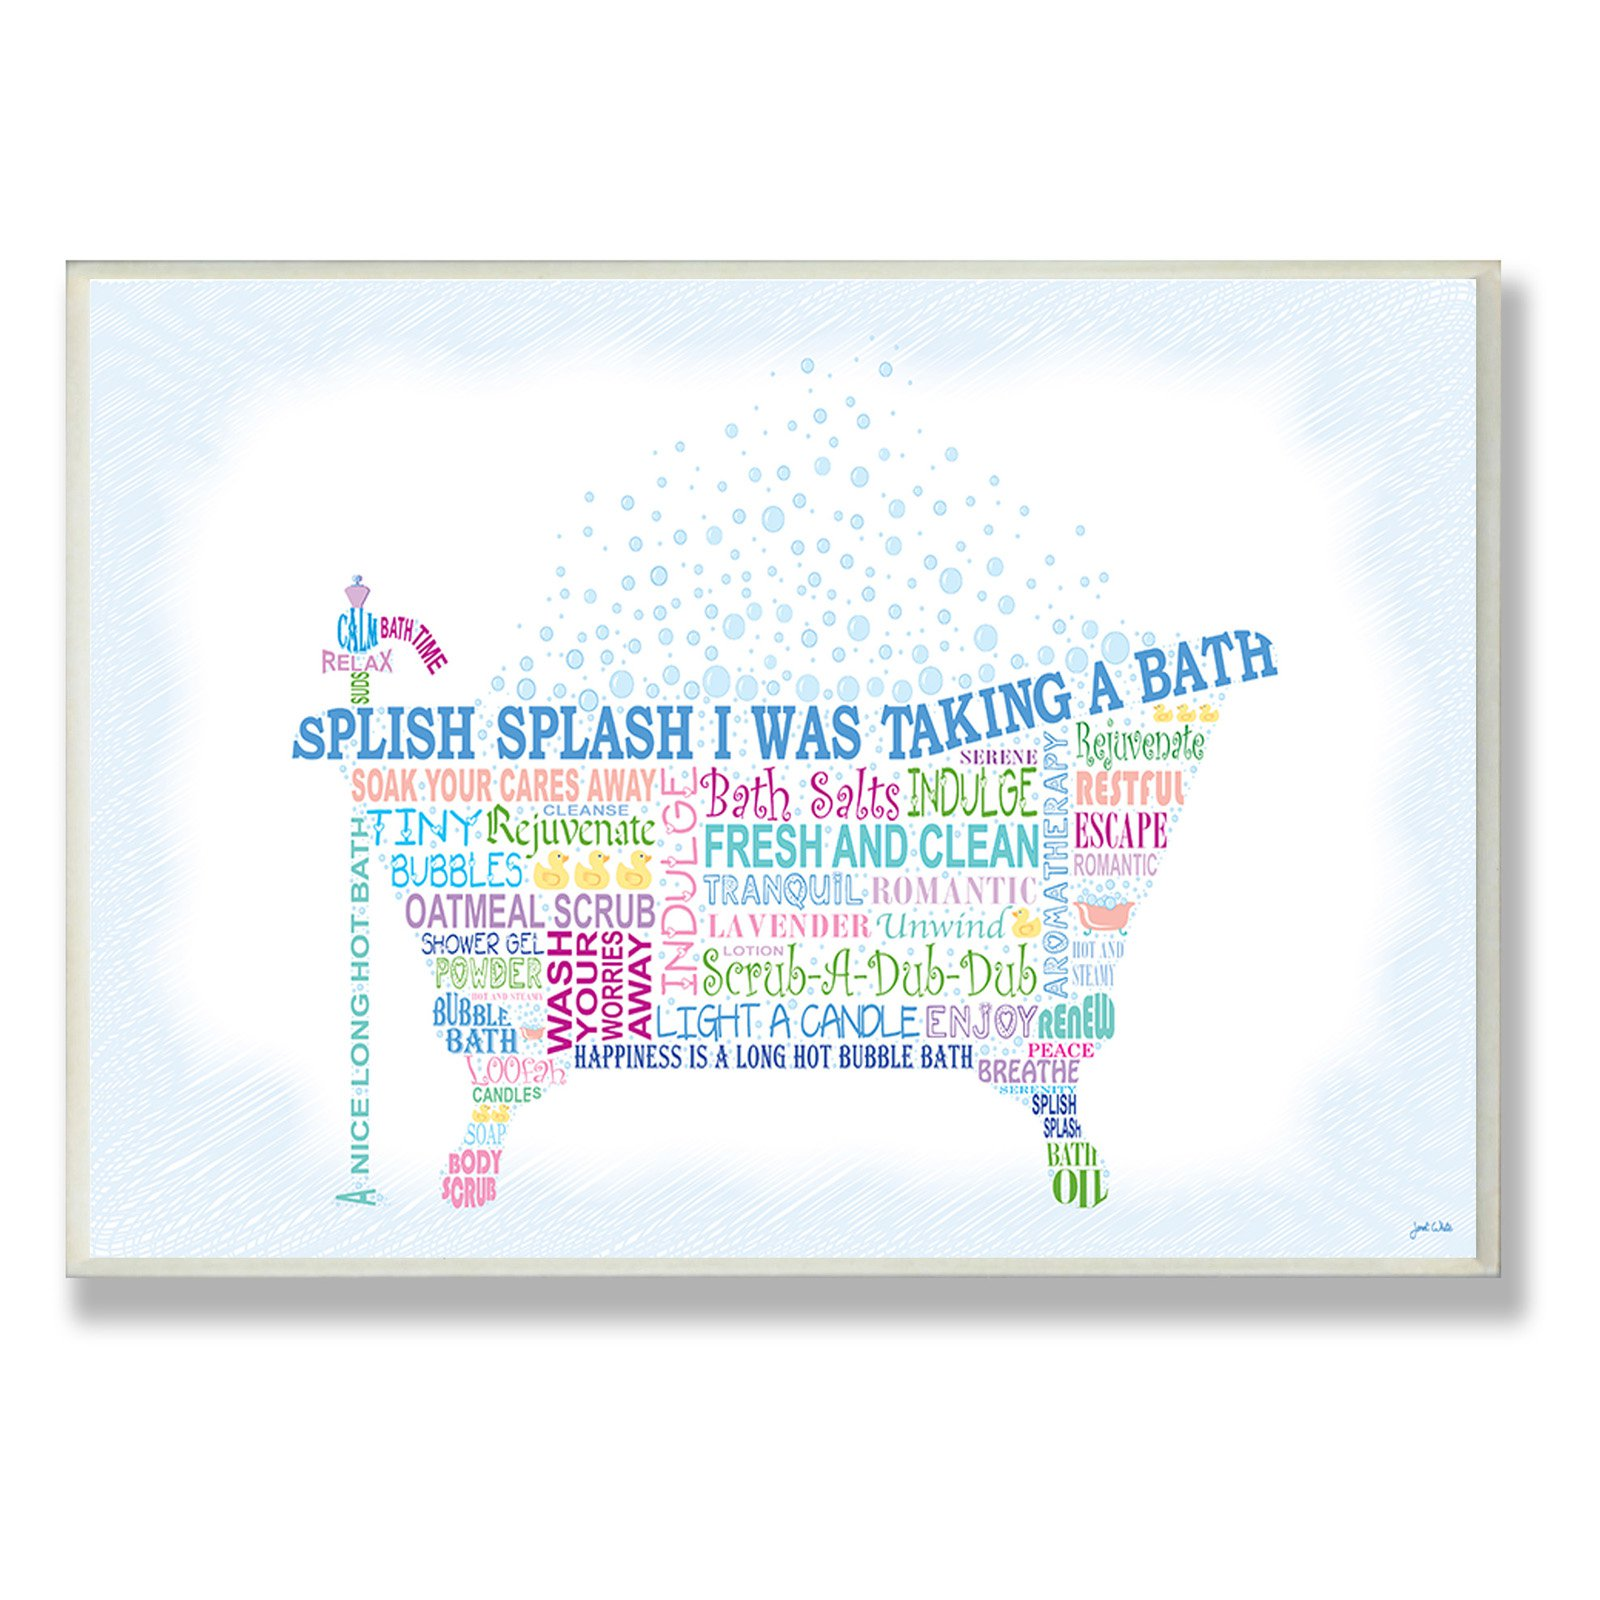 Splish Splash Typography Bathroom Wall Plaque